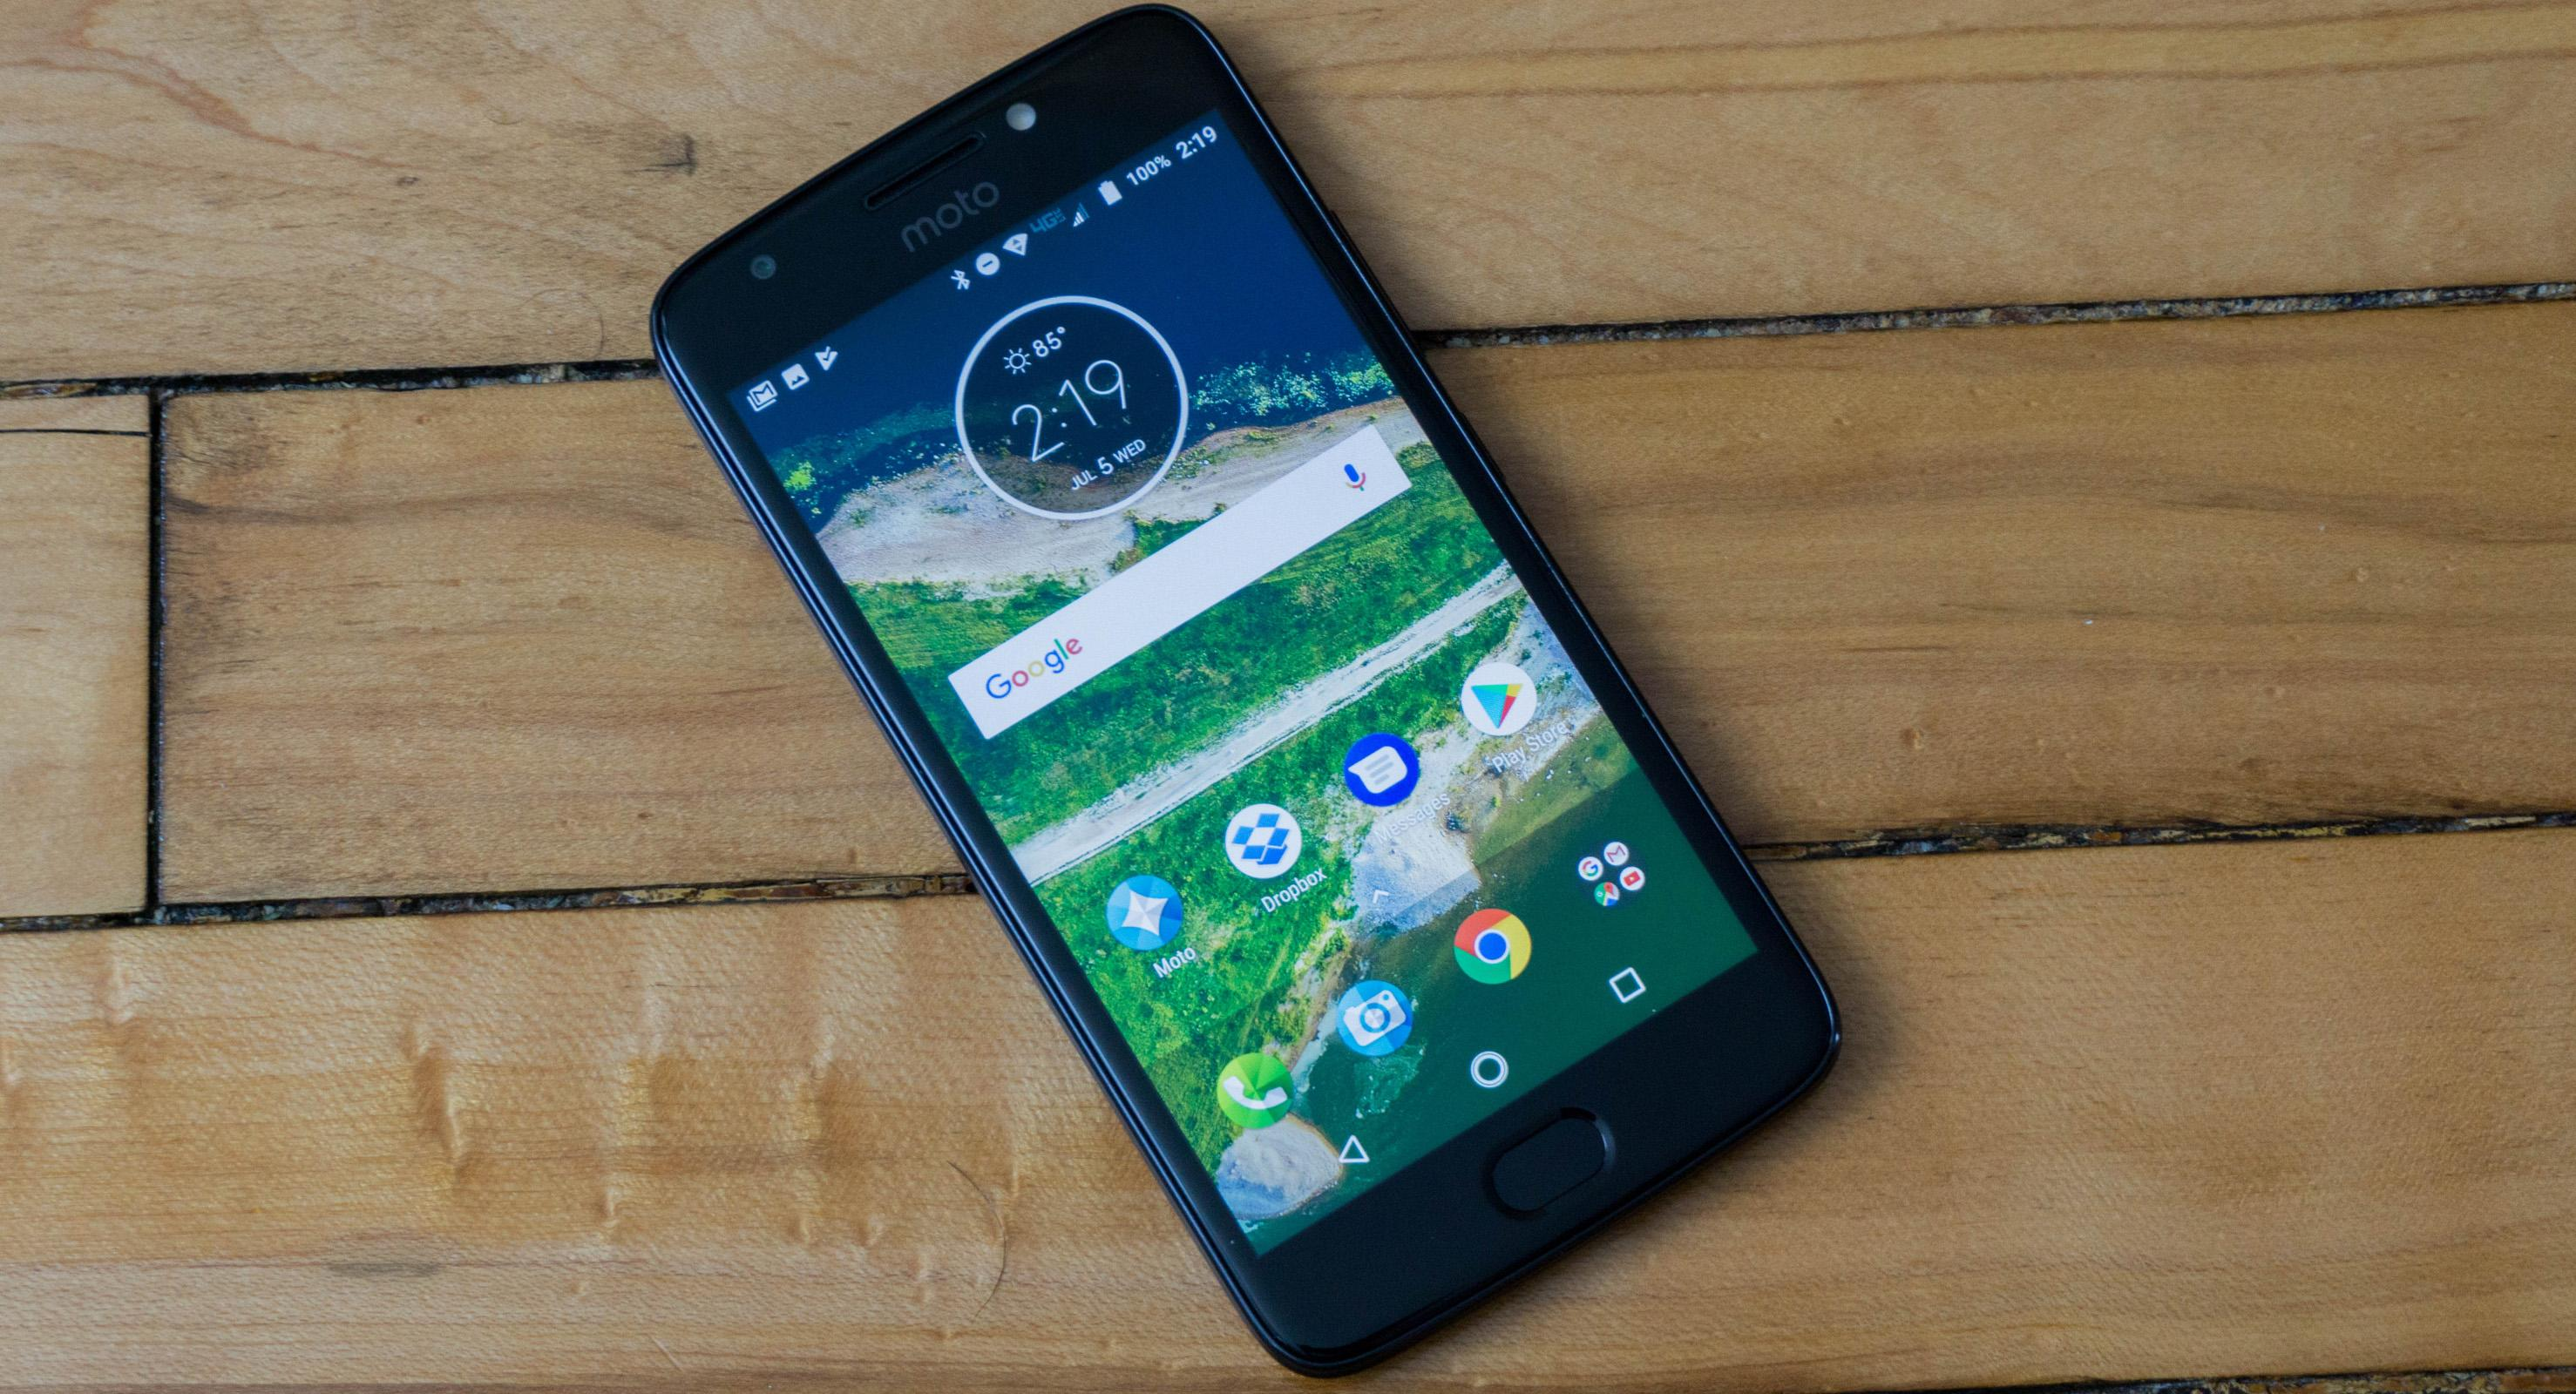 Motorola moto e4 available in excellent condition with an adjustable appropriate price - photo 2